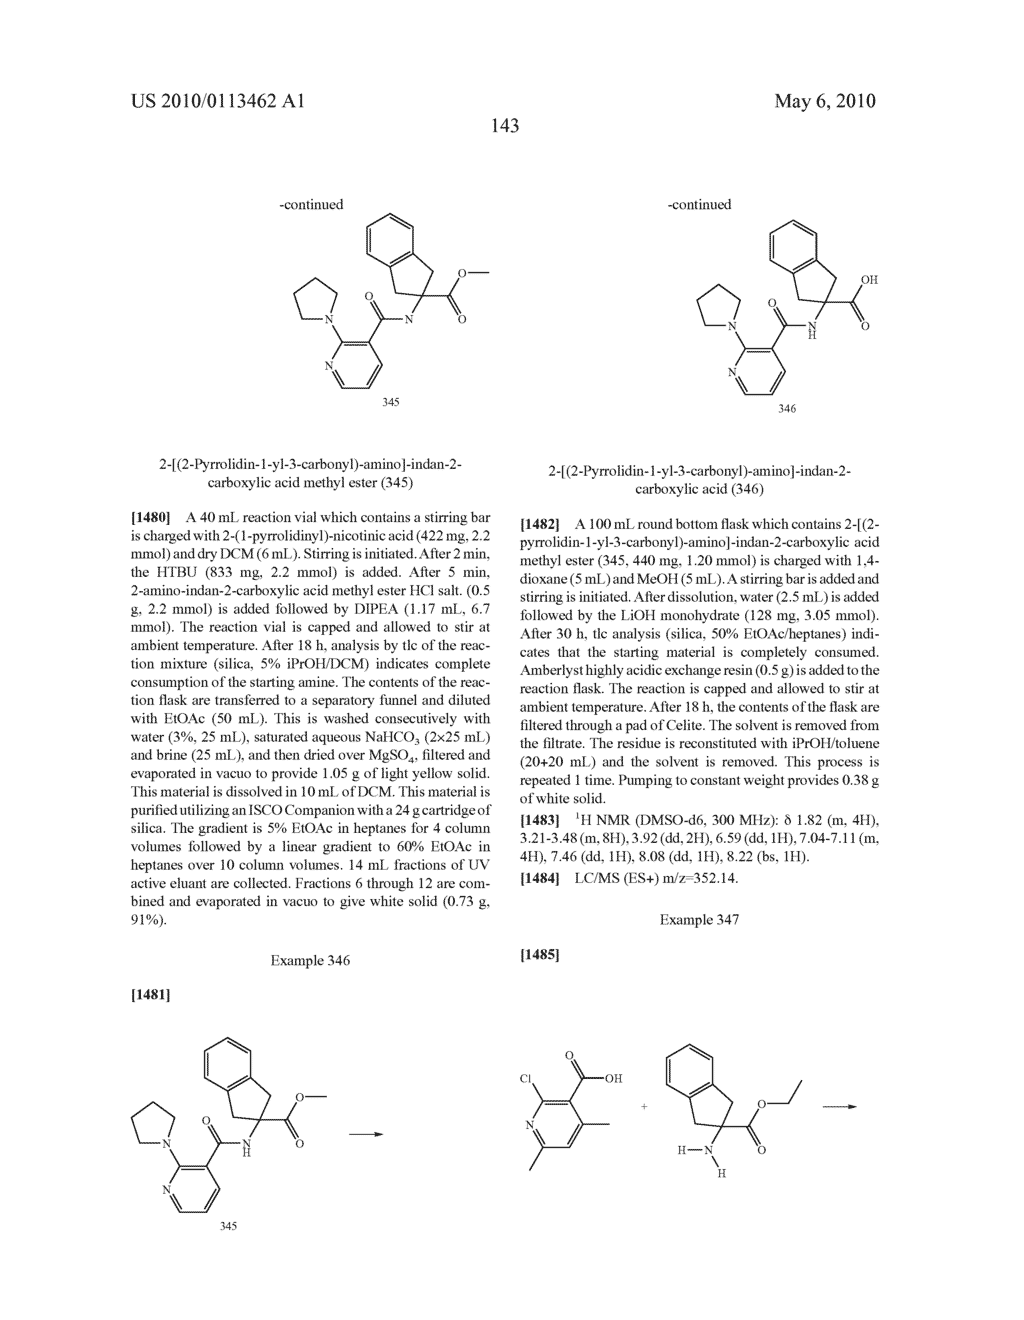 SUBSTITUTED BENZOYLAMINO-INDAN-2-CARBOXYLIC ACIDS AND RELATED COMPOUNDS - diagram, schematic, and image 144